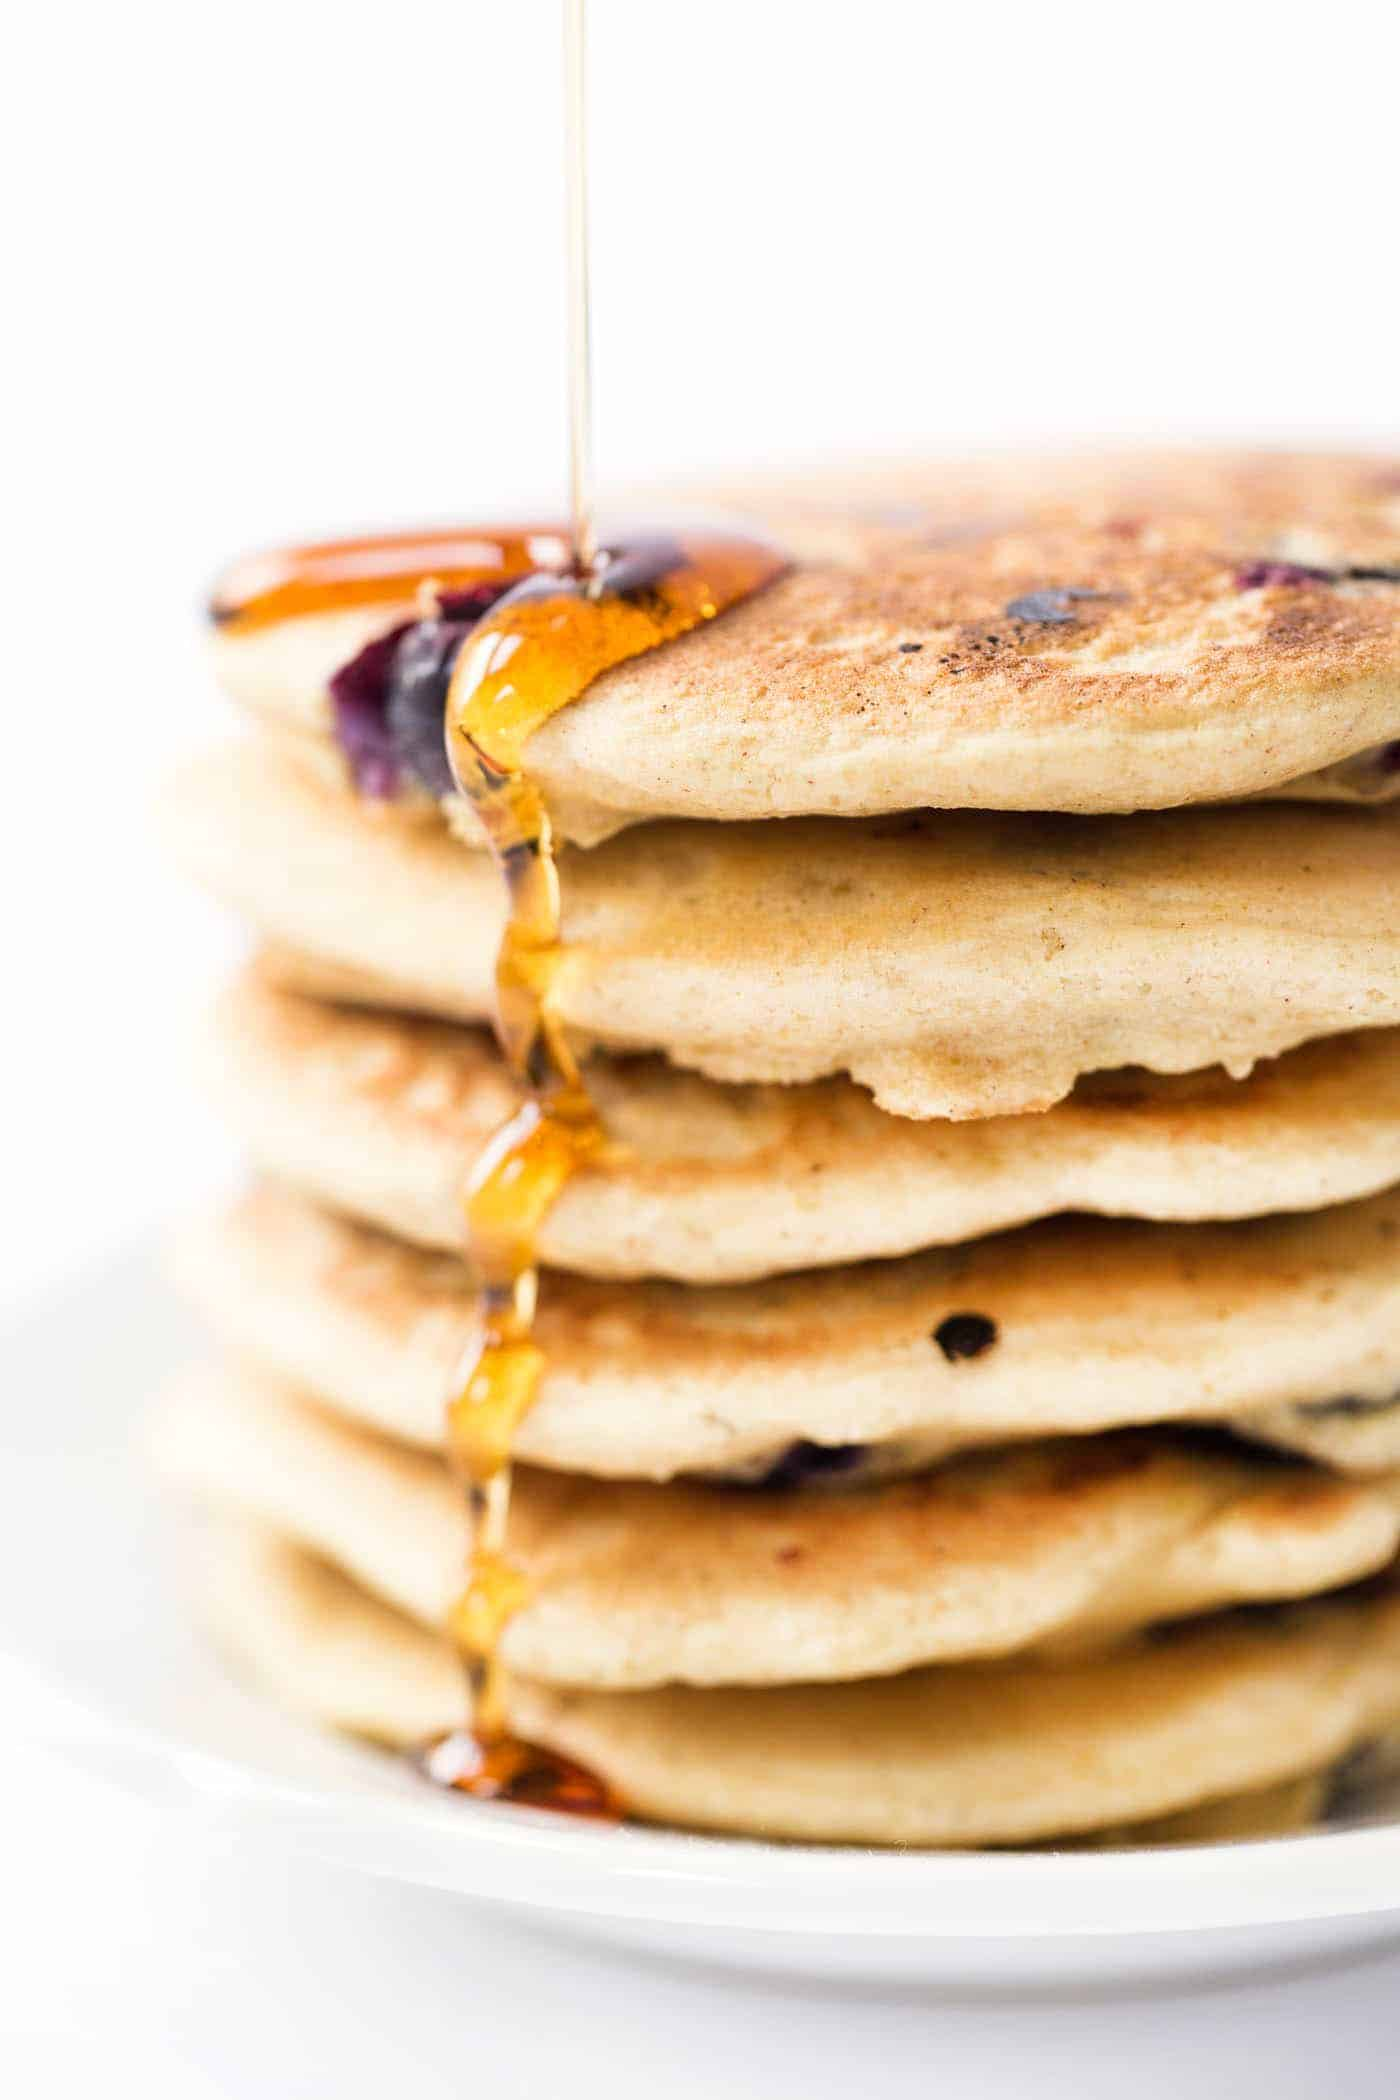 Simply PERFECT gluten-free Blueberry Pancakes made with quinoa flakes! Light, fluffy and surprisingly healthy too!